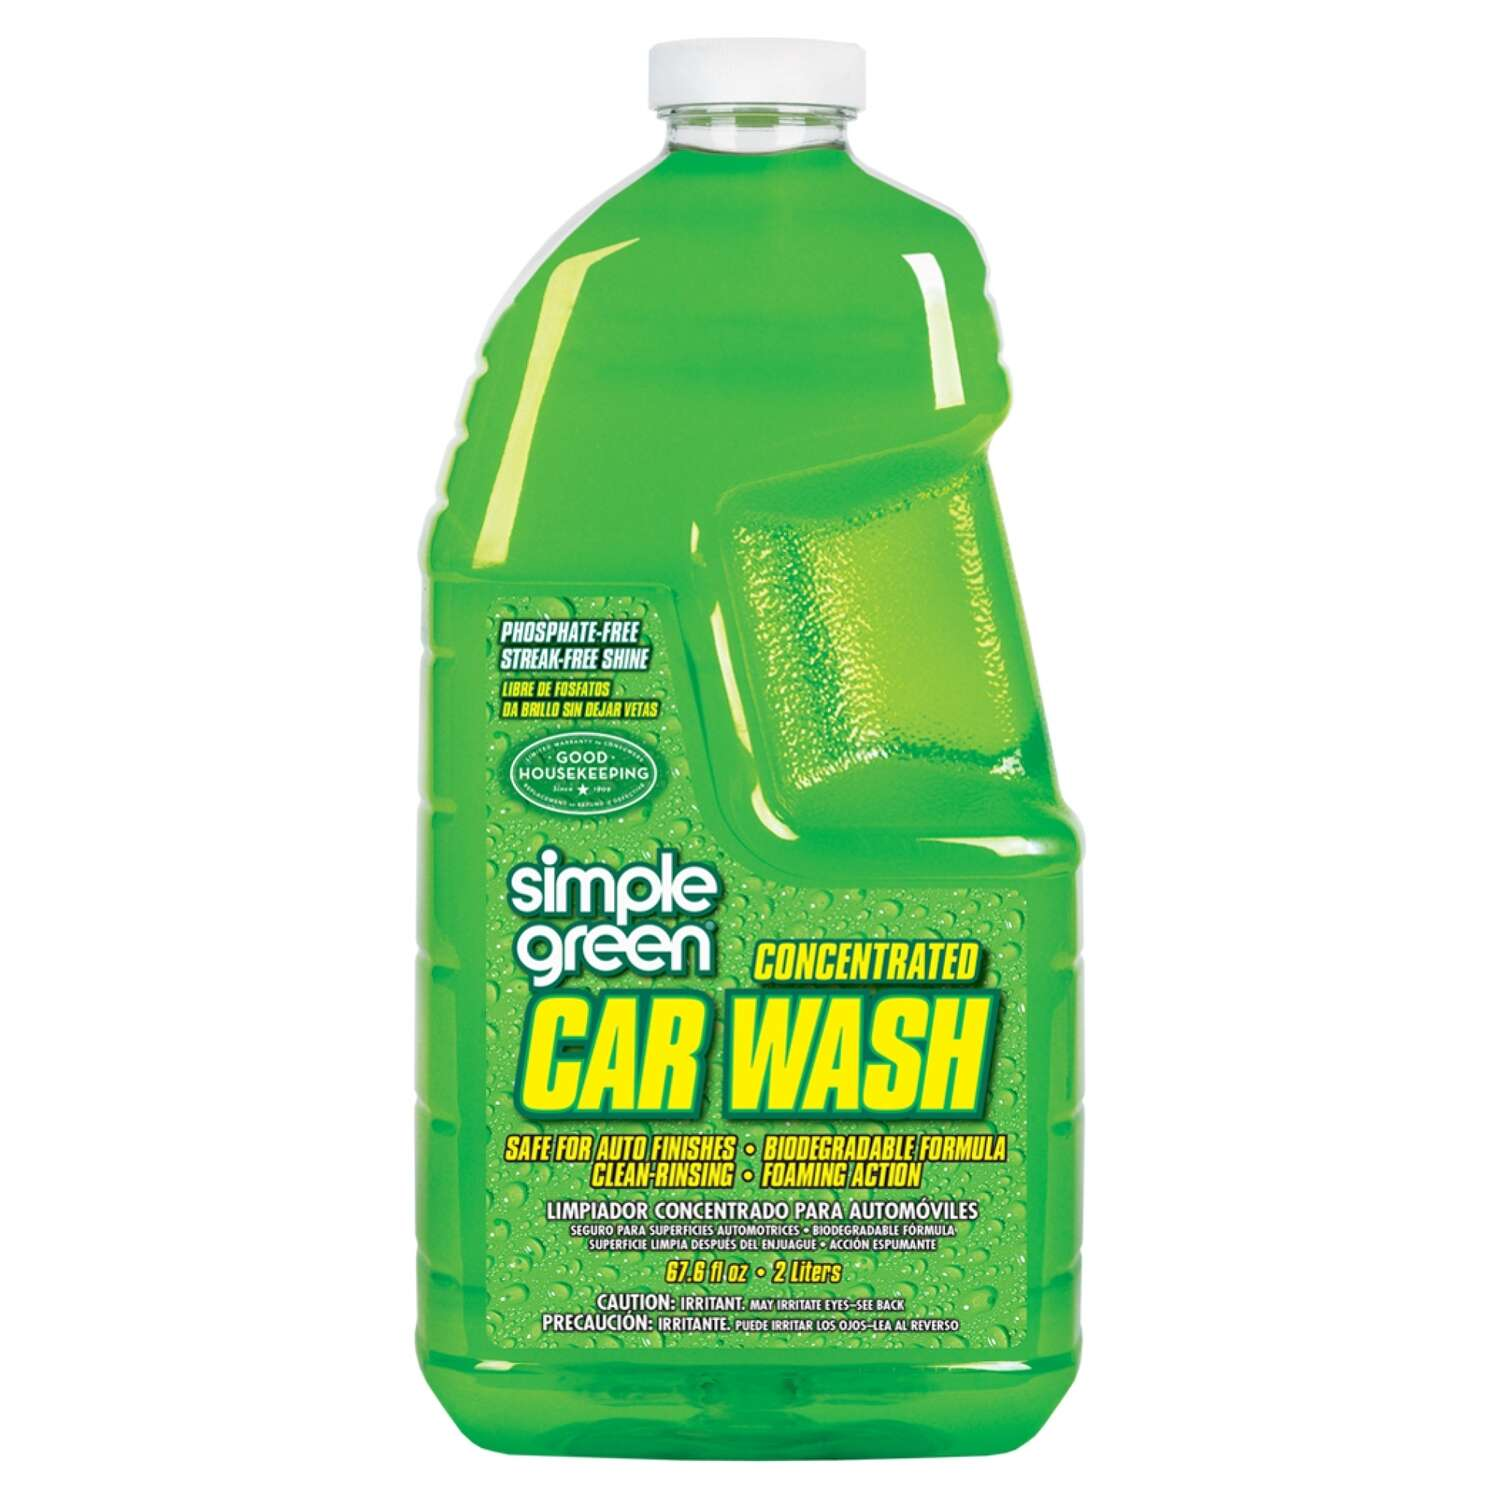 Simple Green Concentrated Car Wash 67.6 oz.